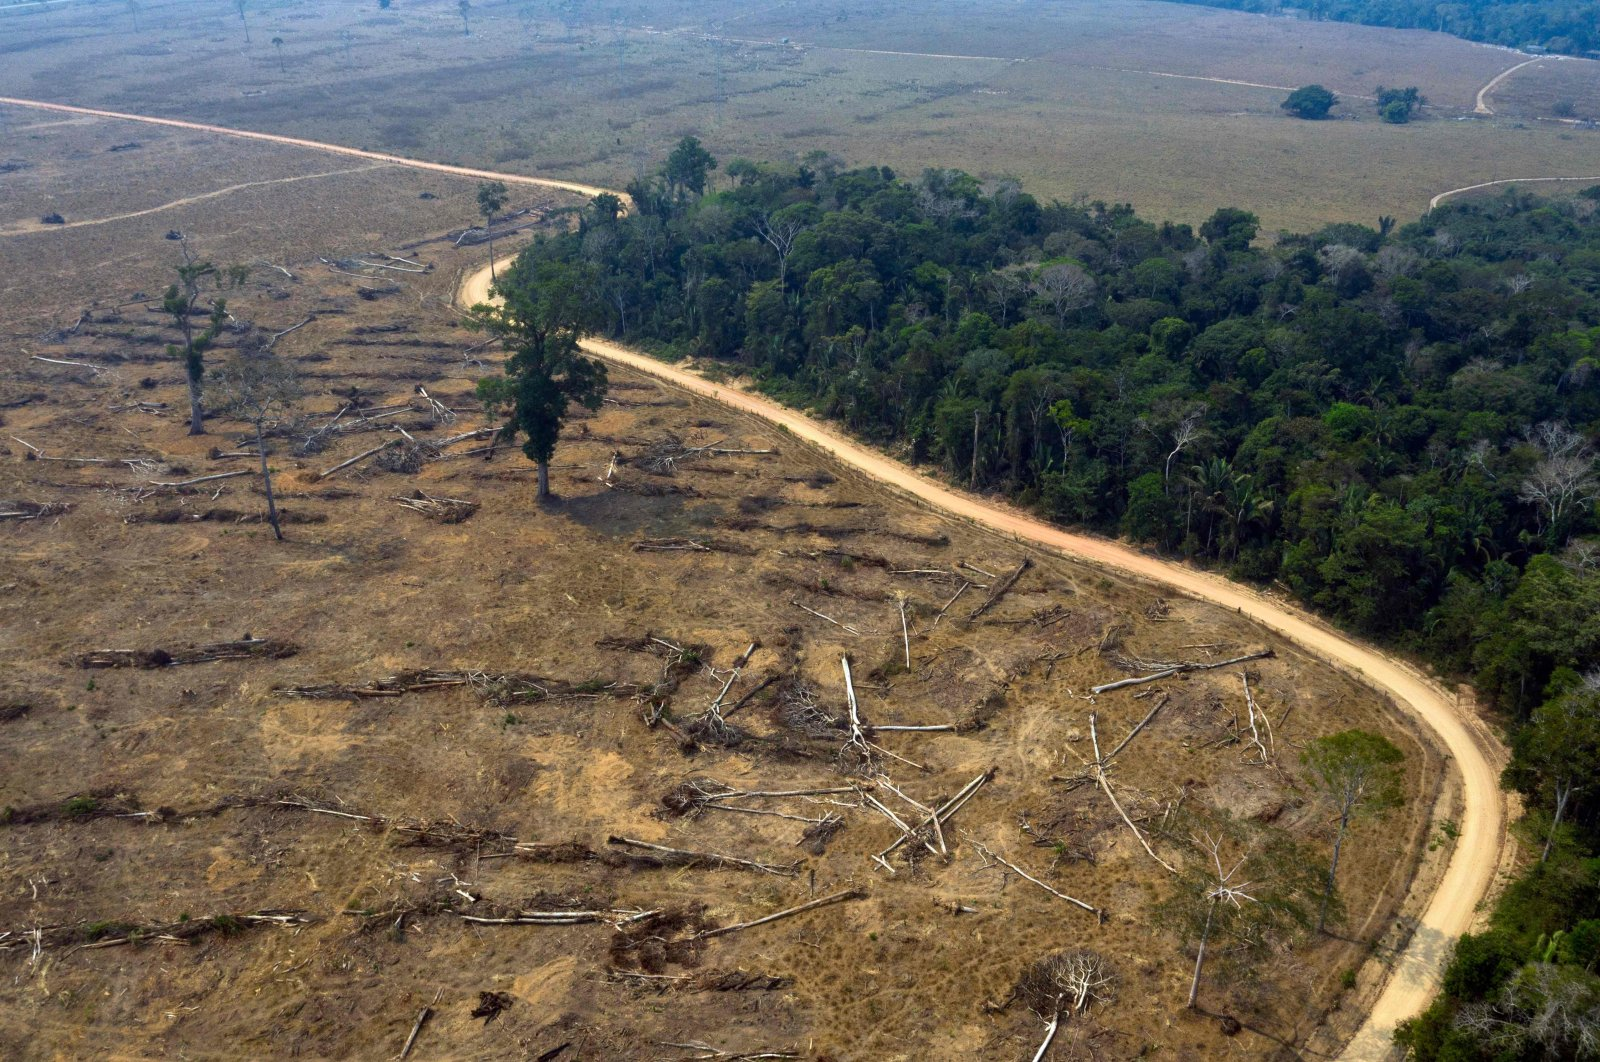 This file picture shows an aerial view of burnt areas of the Amazon rainforest, near Porto Velho, Rondonia State, Brazil, Aug. 24, 2019. (AFP Photo)